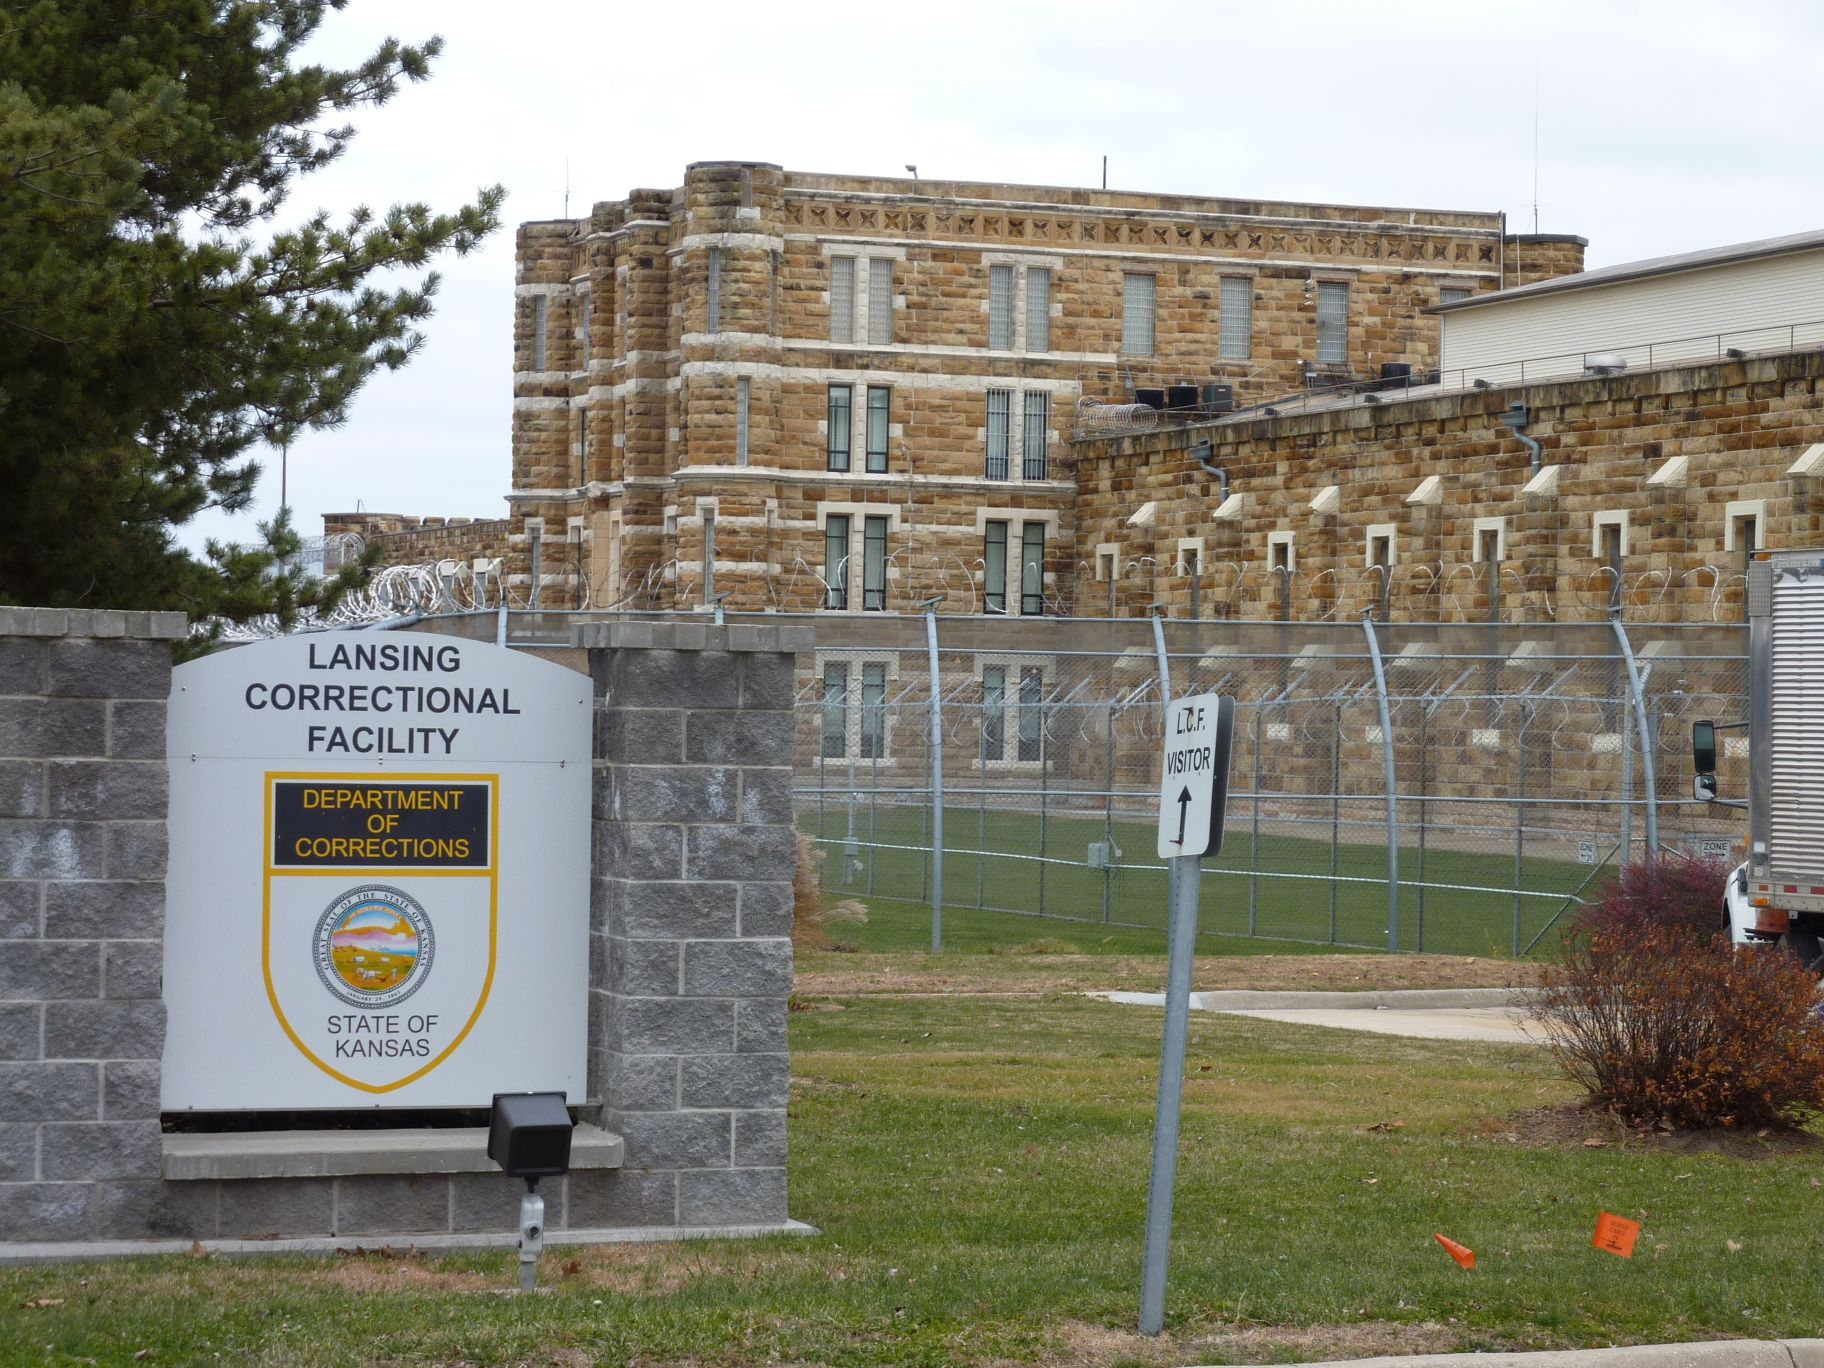 Lansing (KS) United States  city images : lansing correctional facility lansing correctional facility lcf is a ...